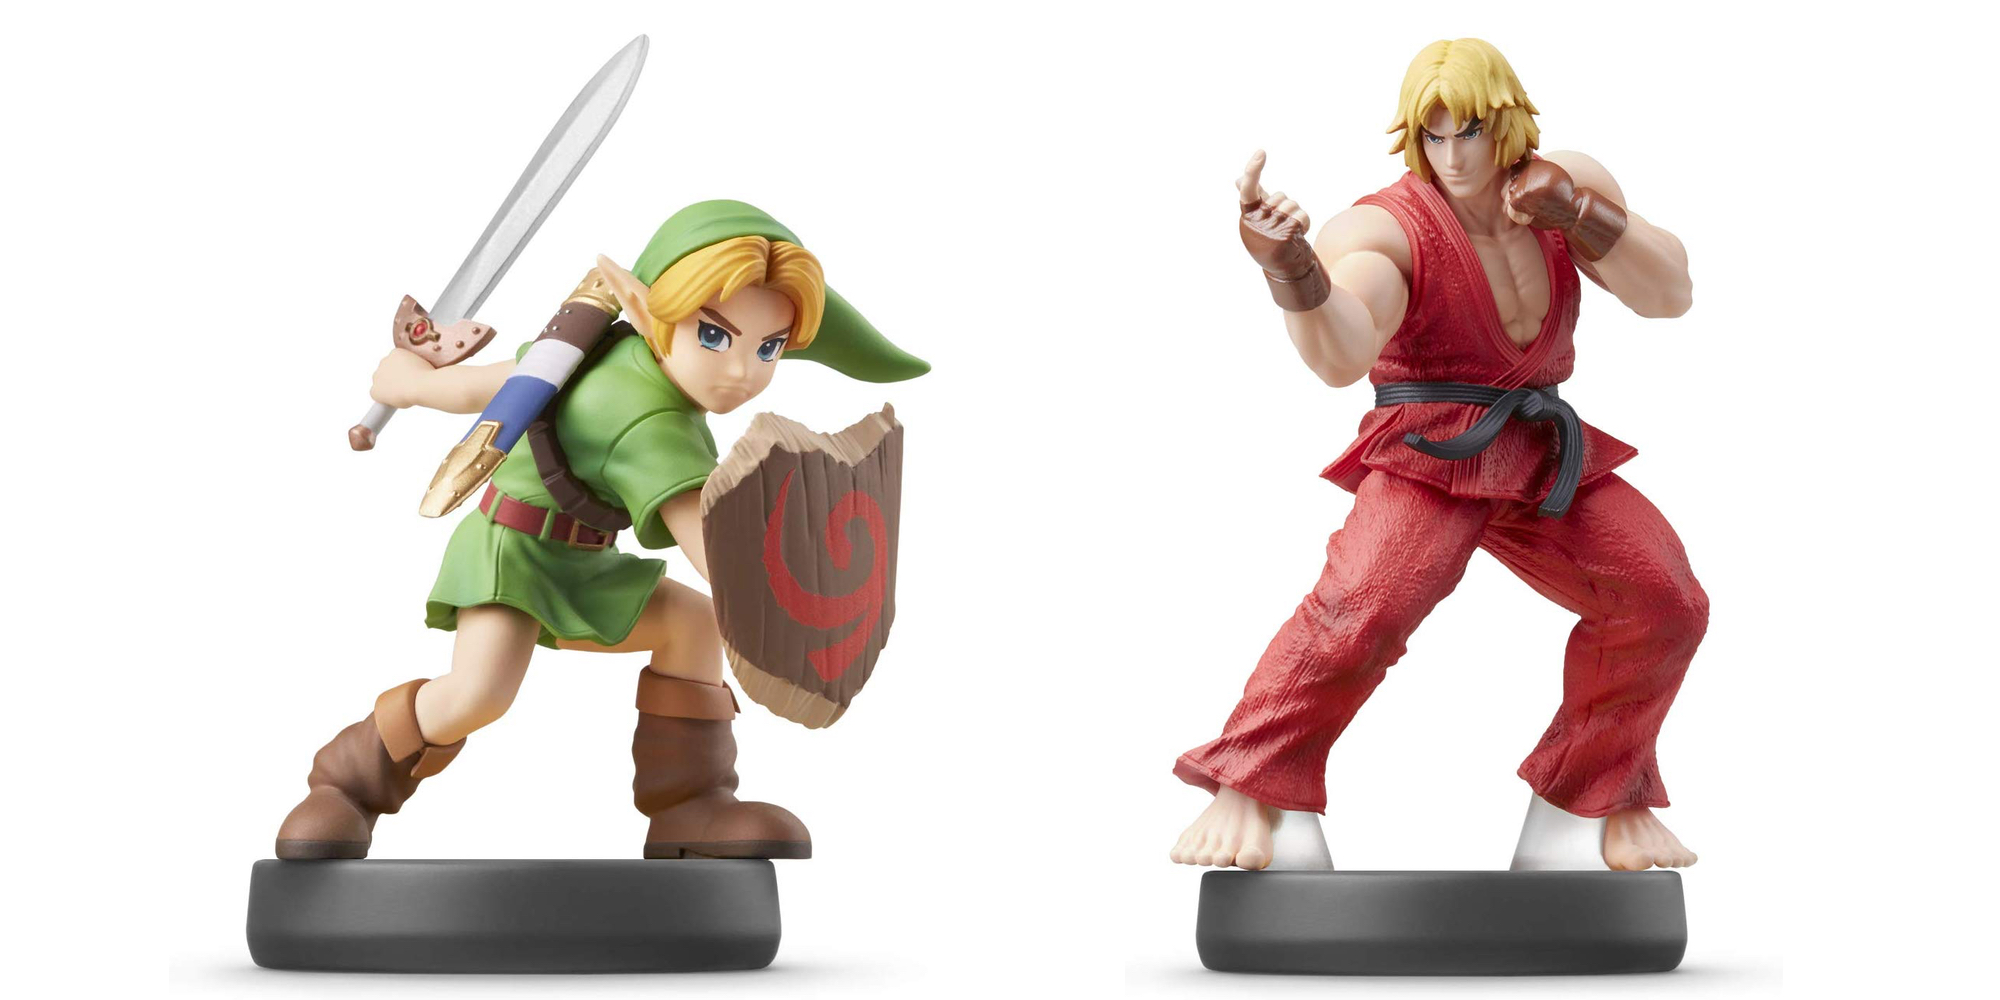 Nintendo's new Super Smash Bros. Young Link, Ken and Daisy Amiibo are available for pre-order